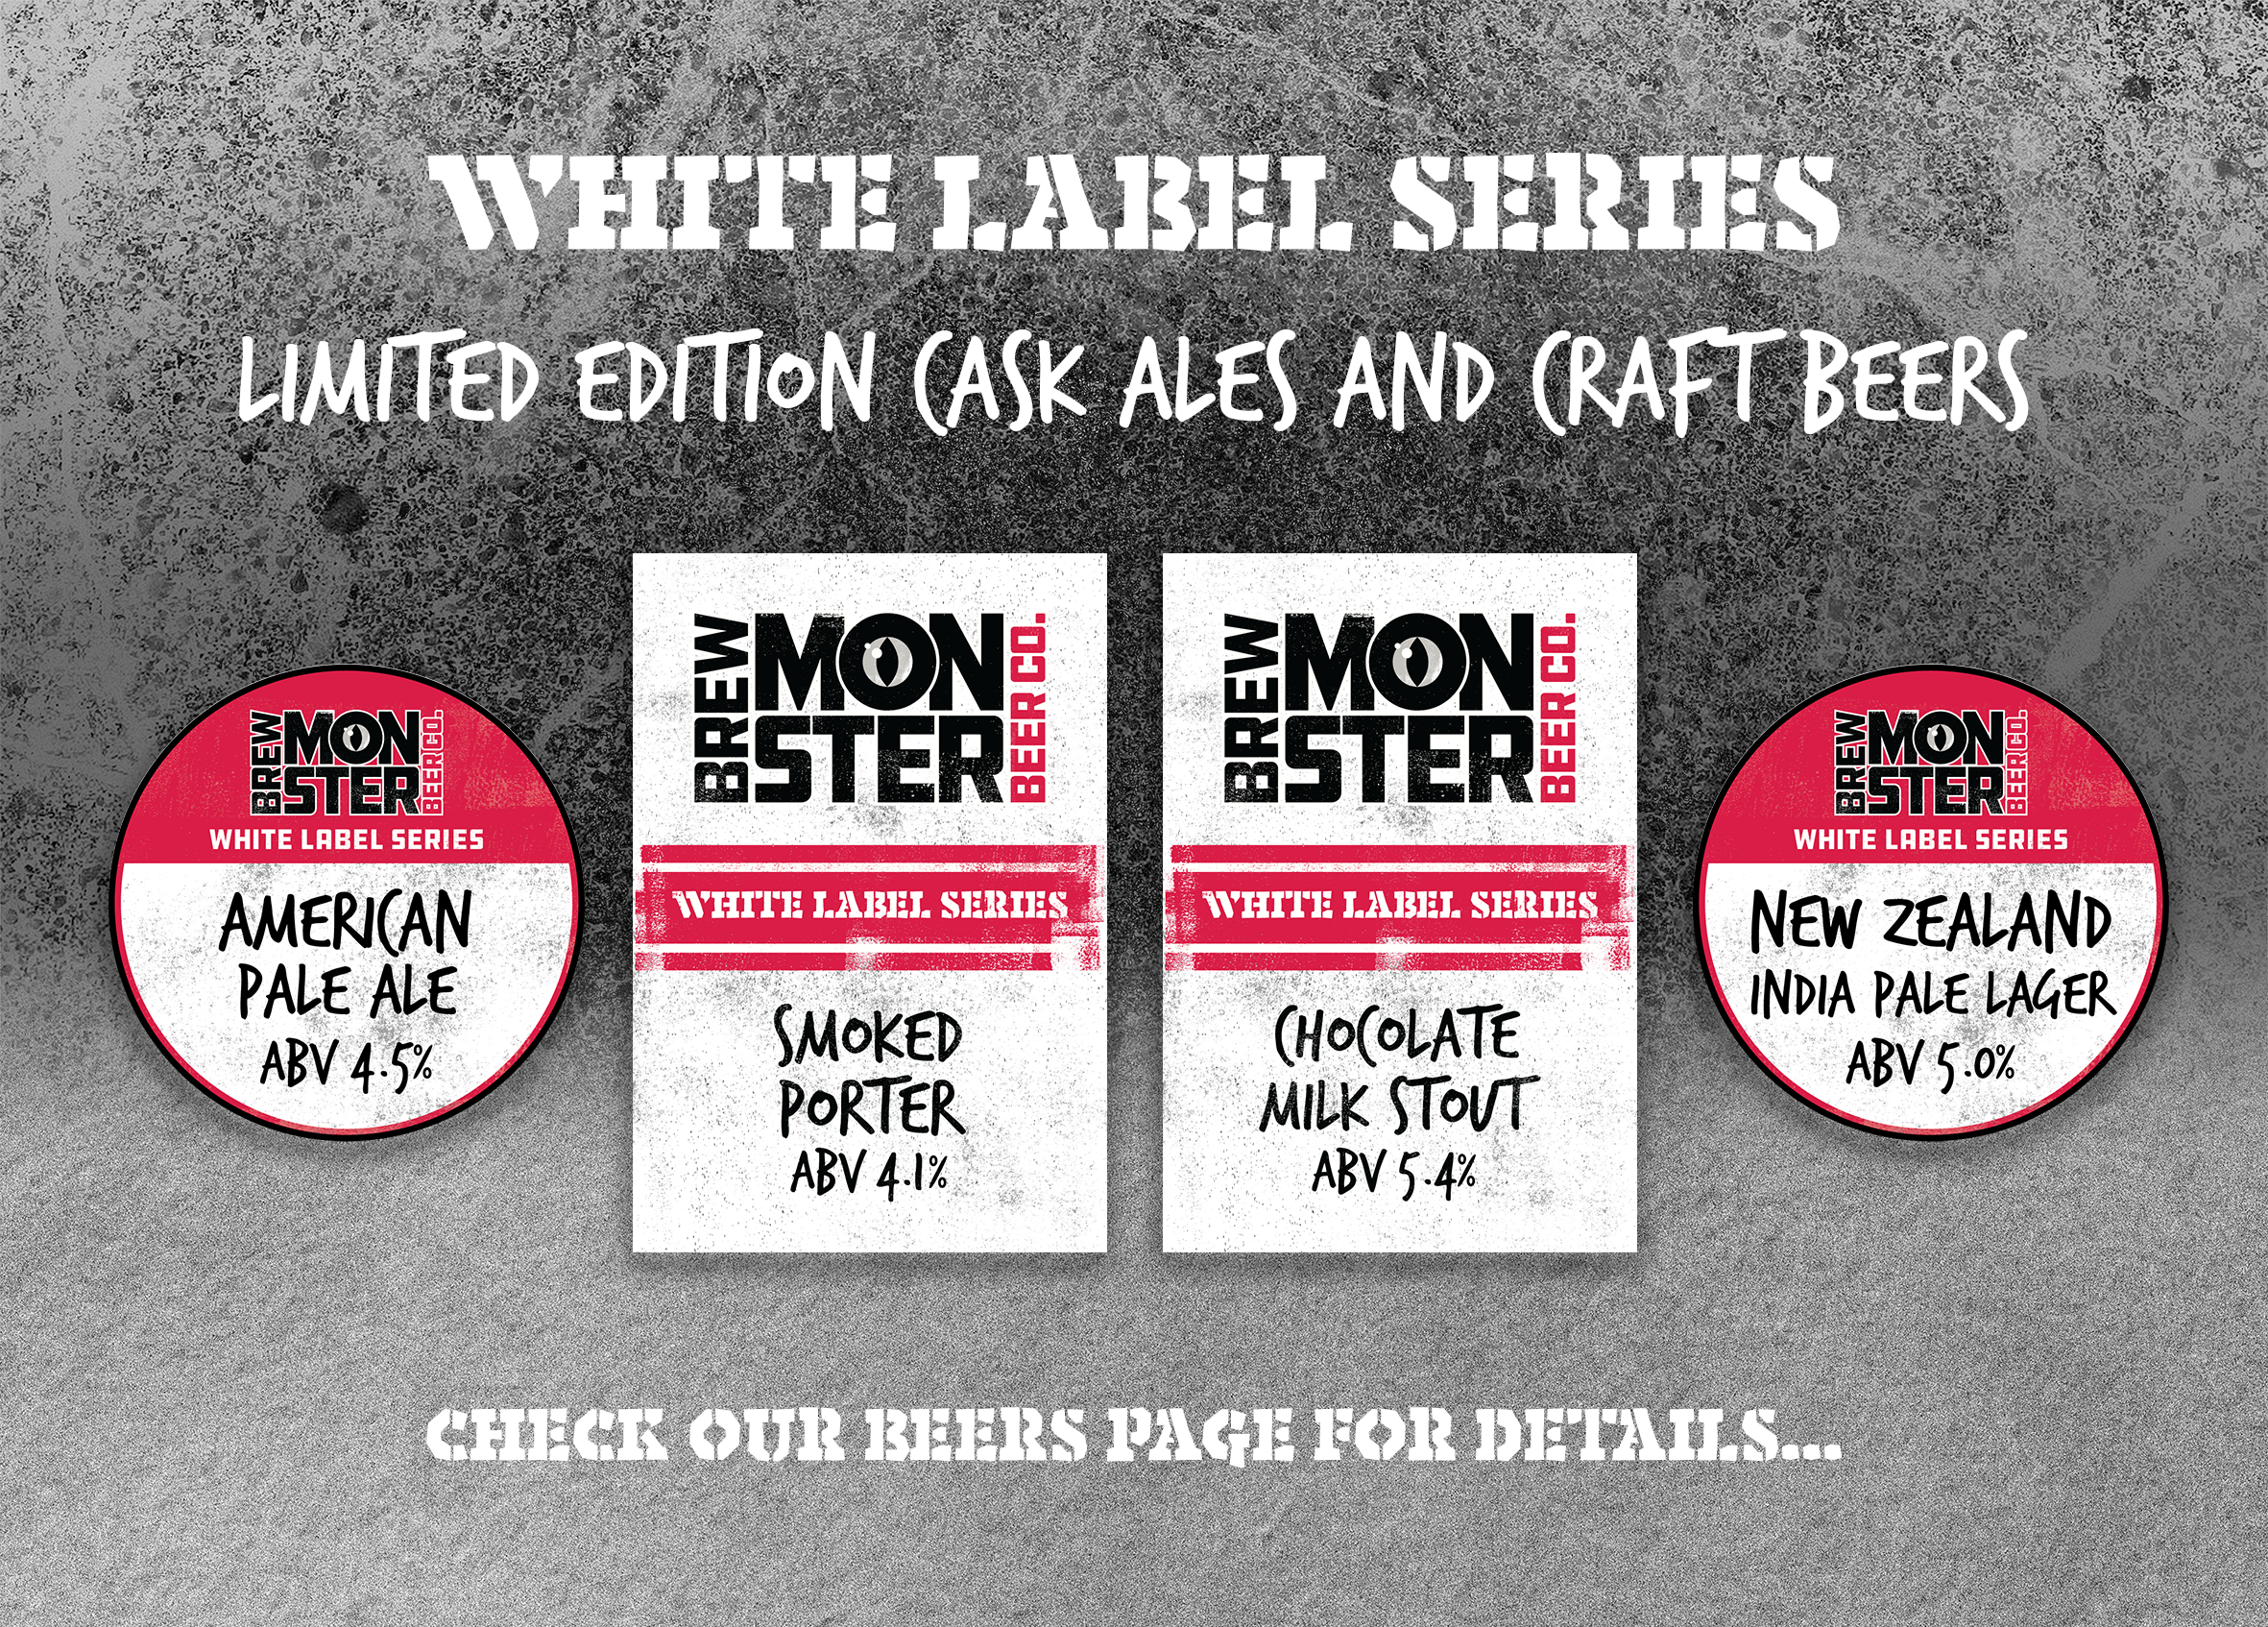 White Label Slider Series